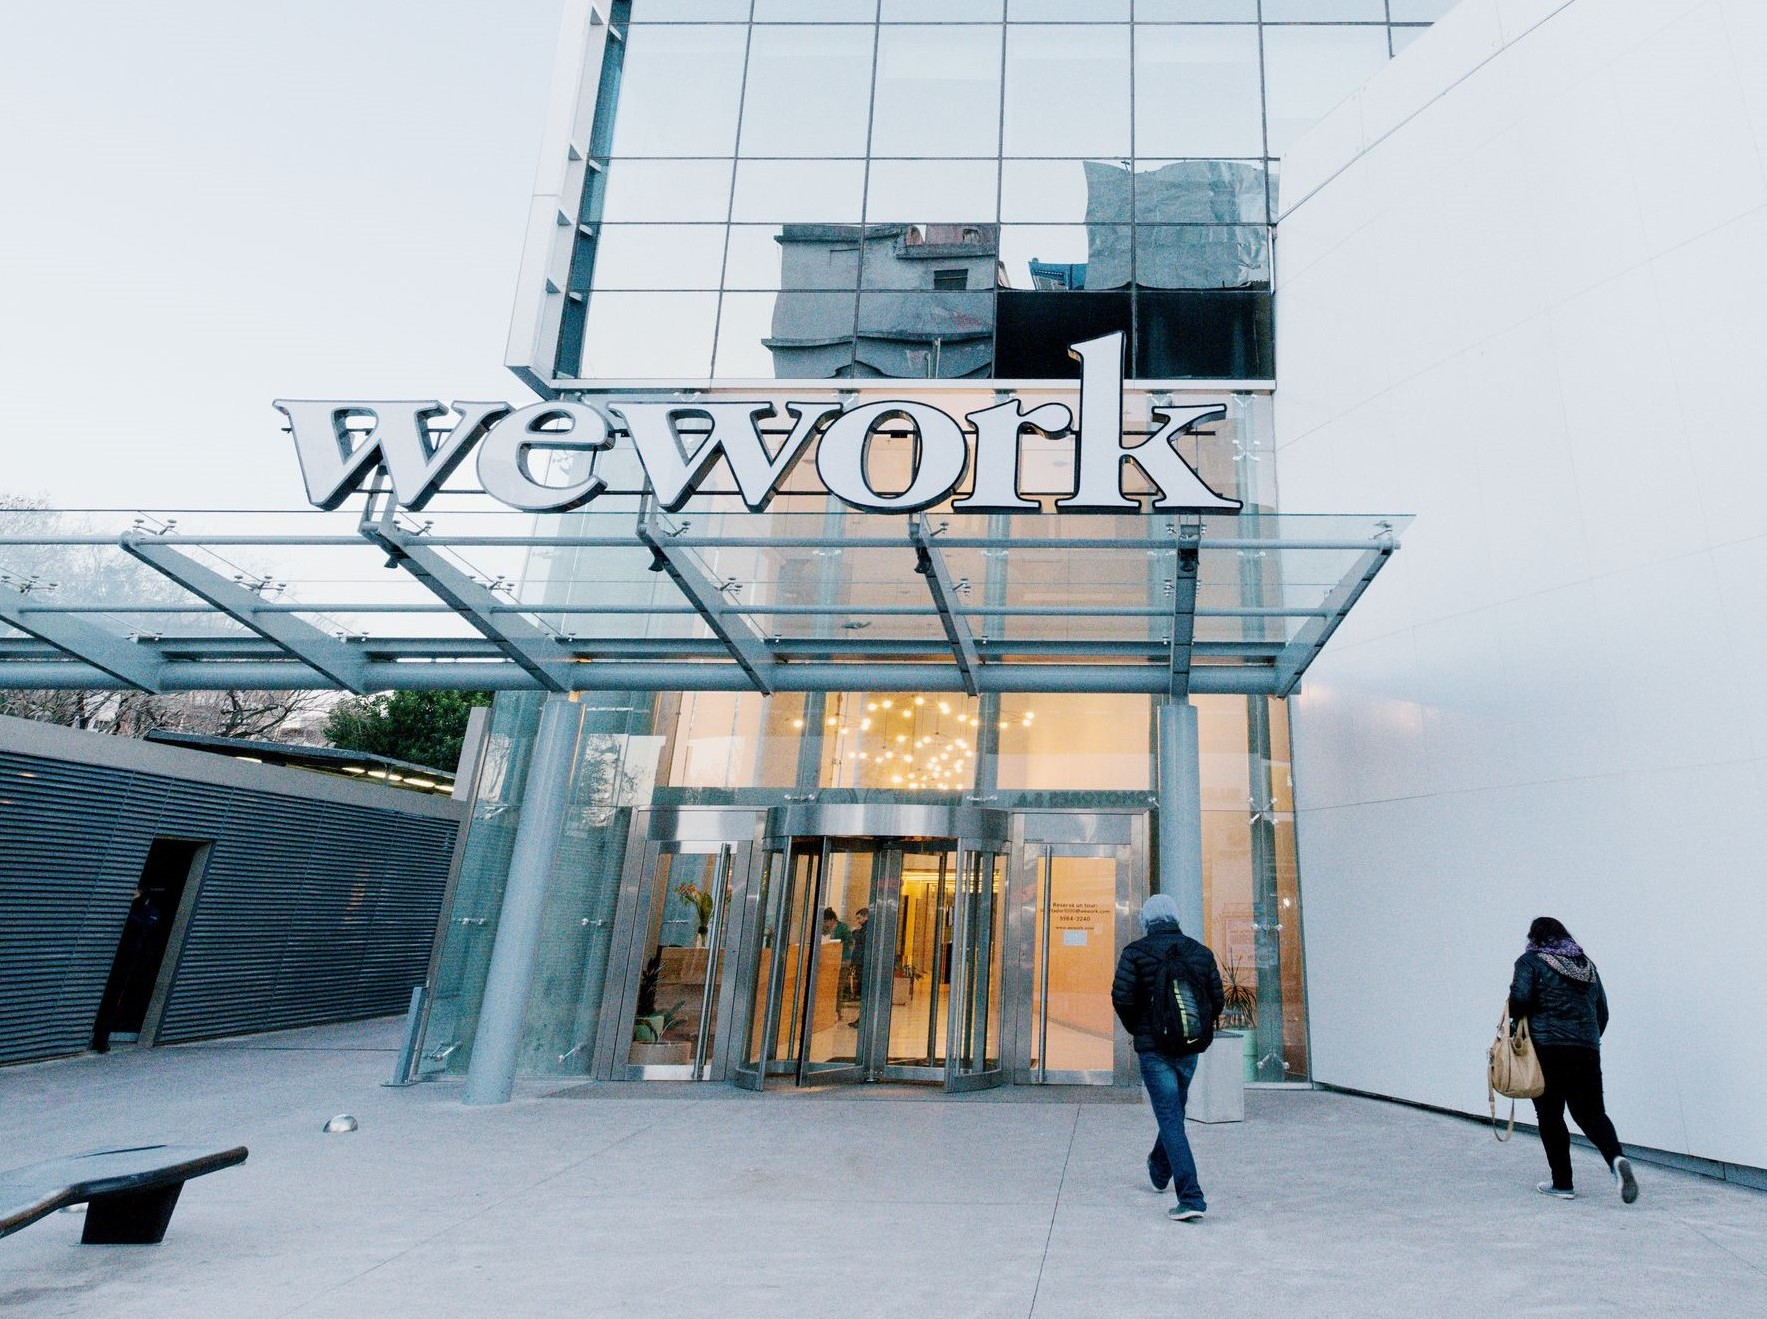 WeWork Av Libertador 1000 in Buenos Aires. Photographs by The We Company